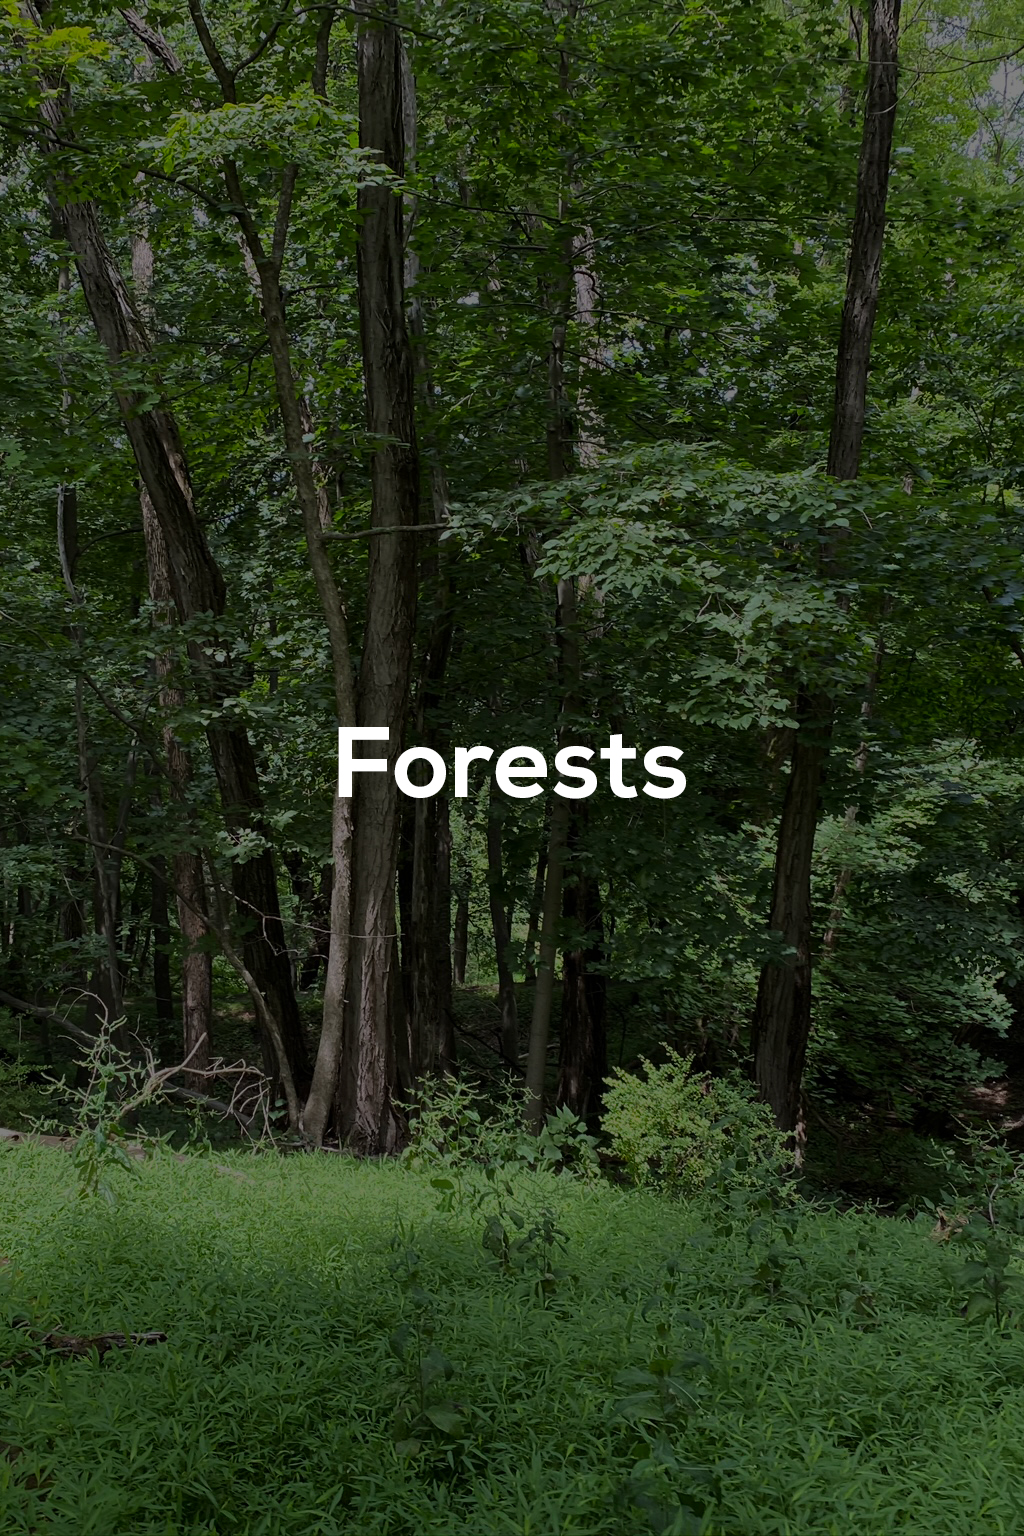 Forests - title